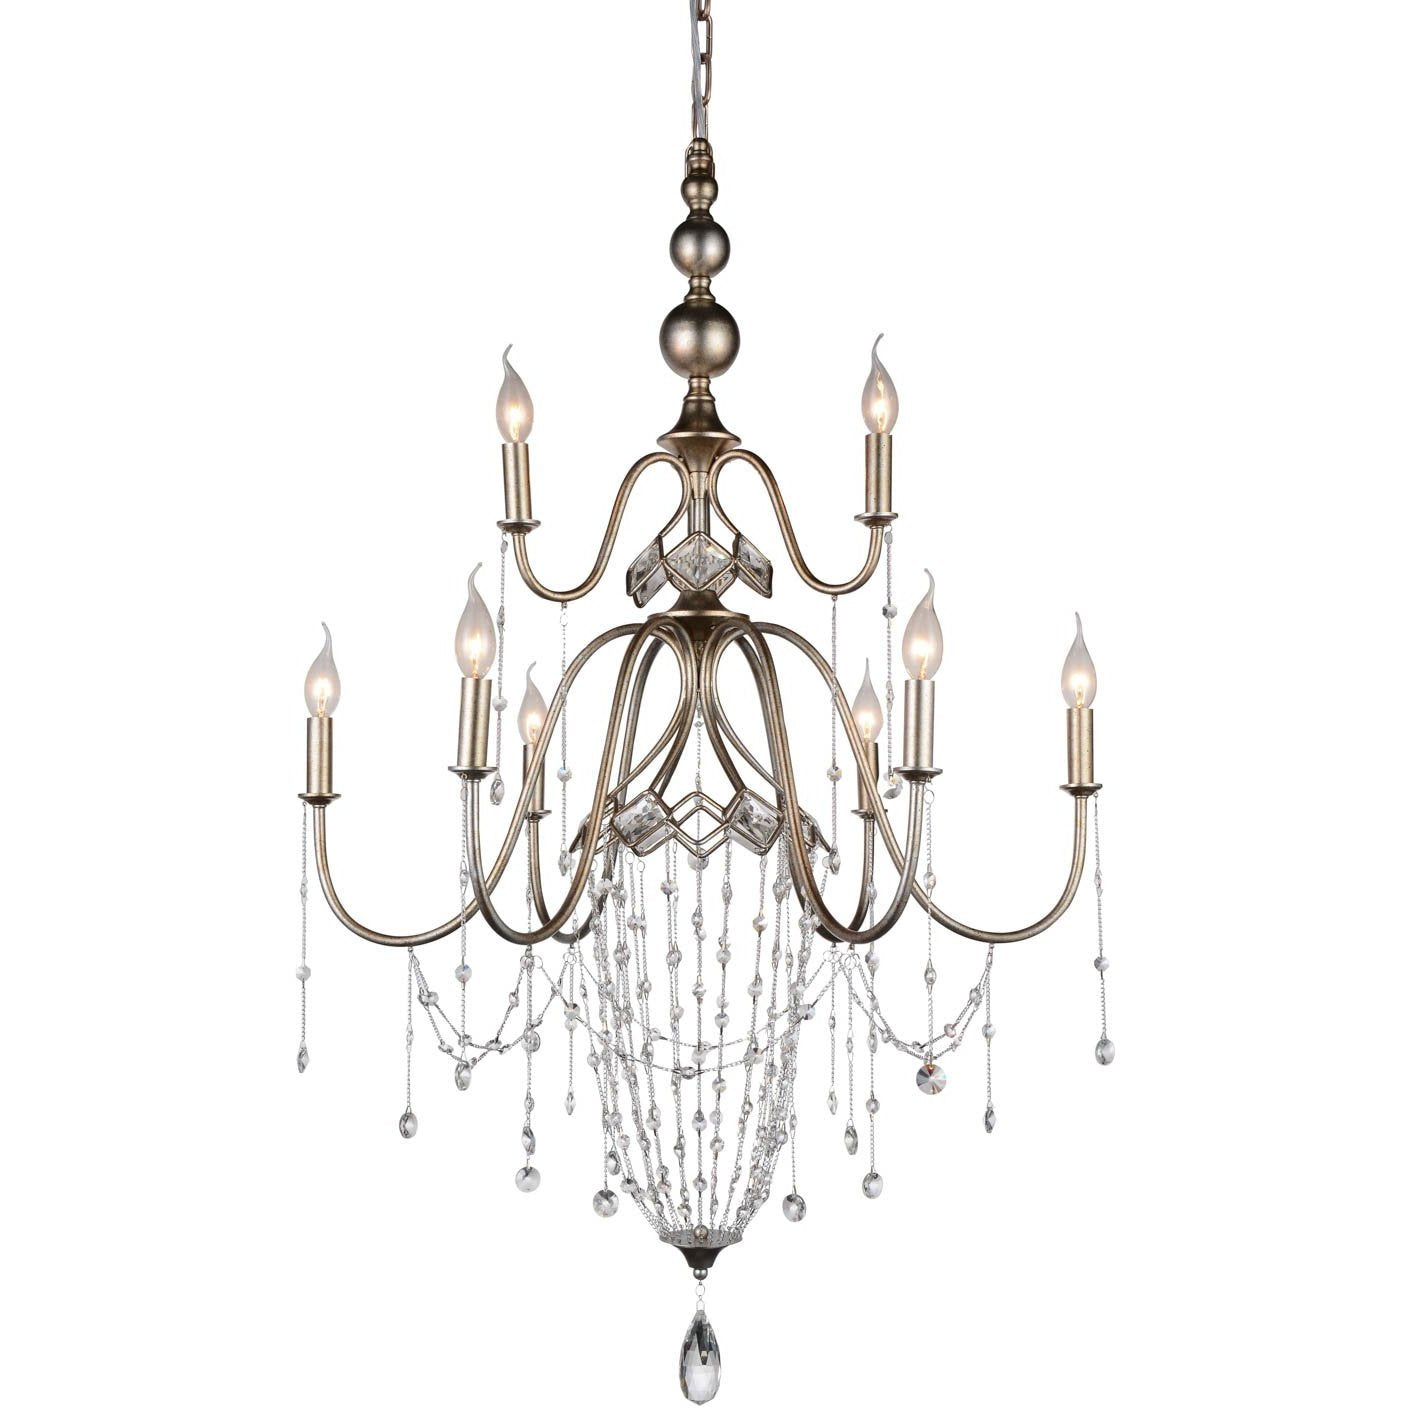 CWI Lighting Chandeliers Speckled Nickel / K9 Clear Pembina 9 Light Up Chandelier with Speckled Nickel finish by CWI Lighting 9840P31-9-161